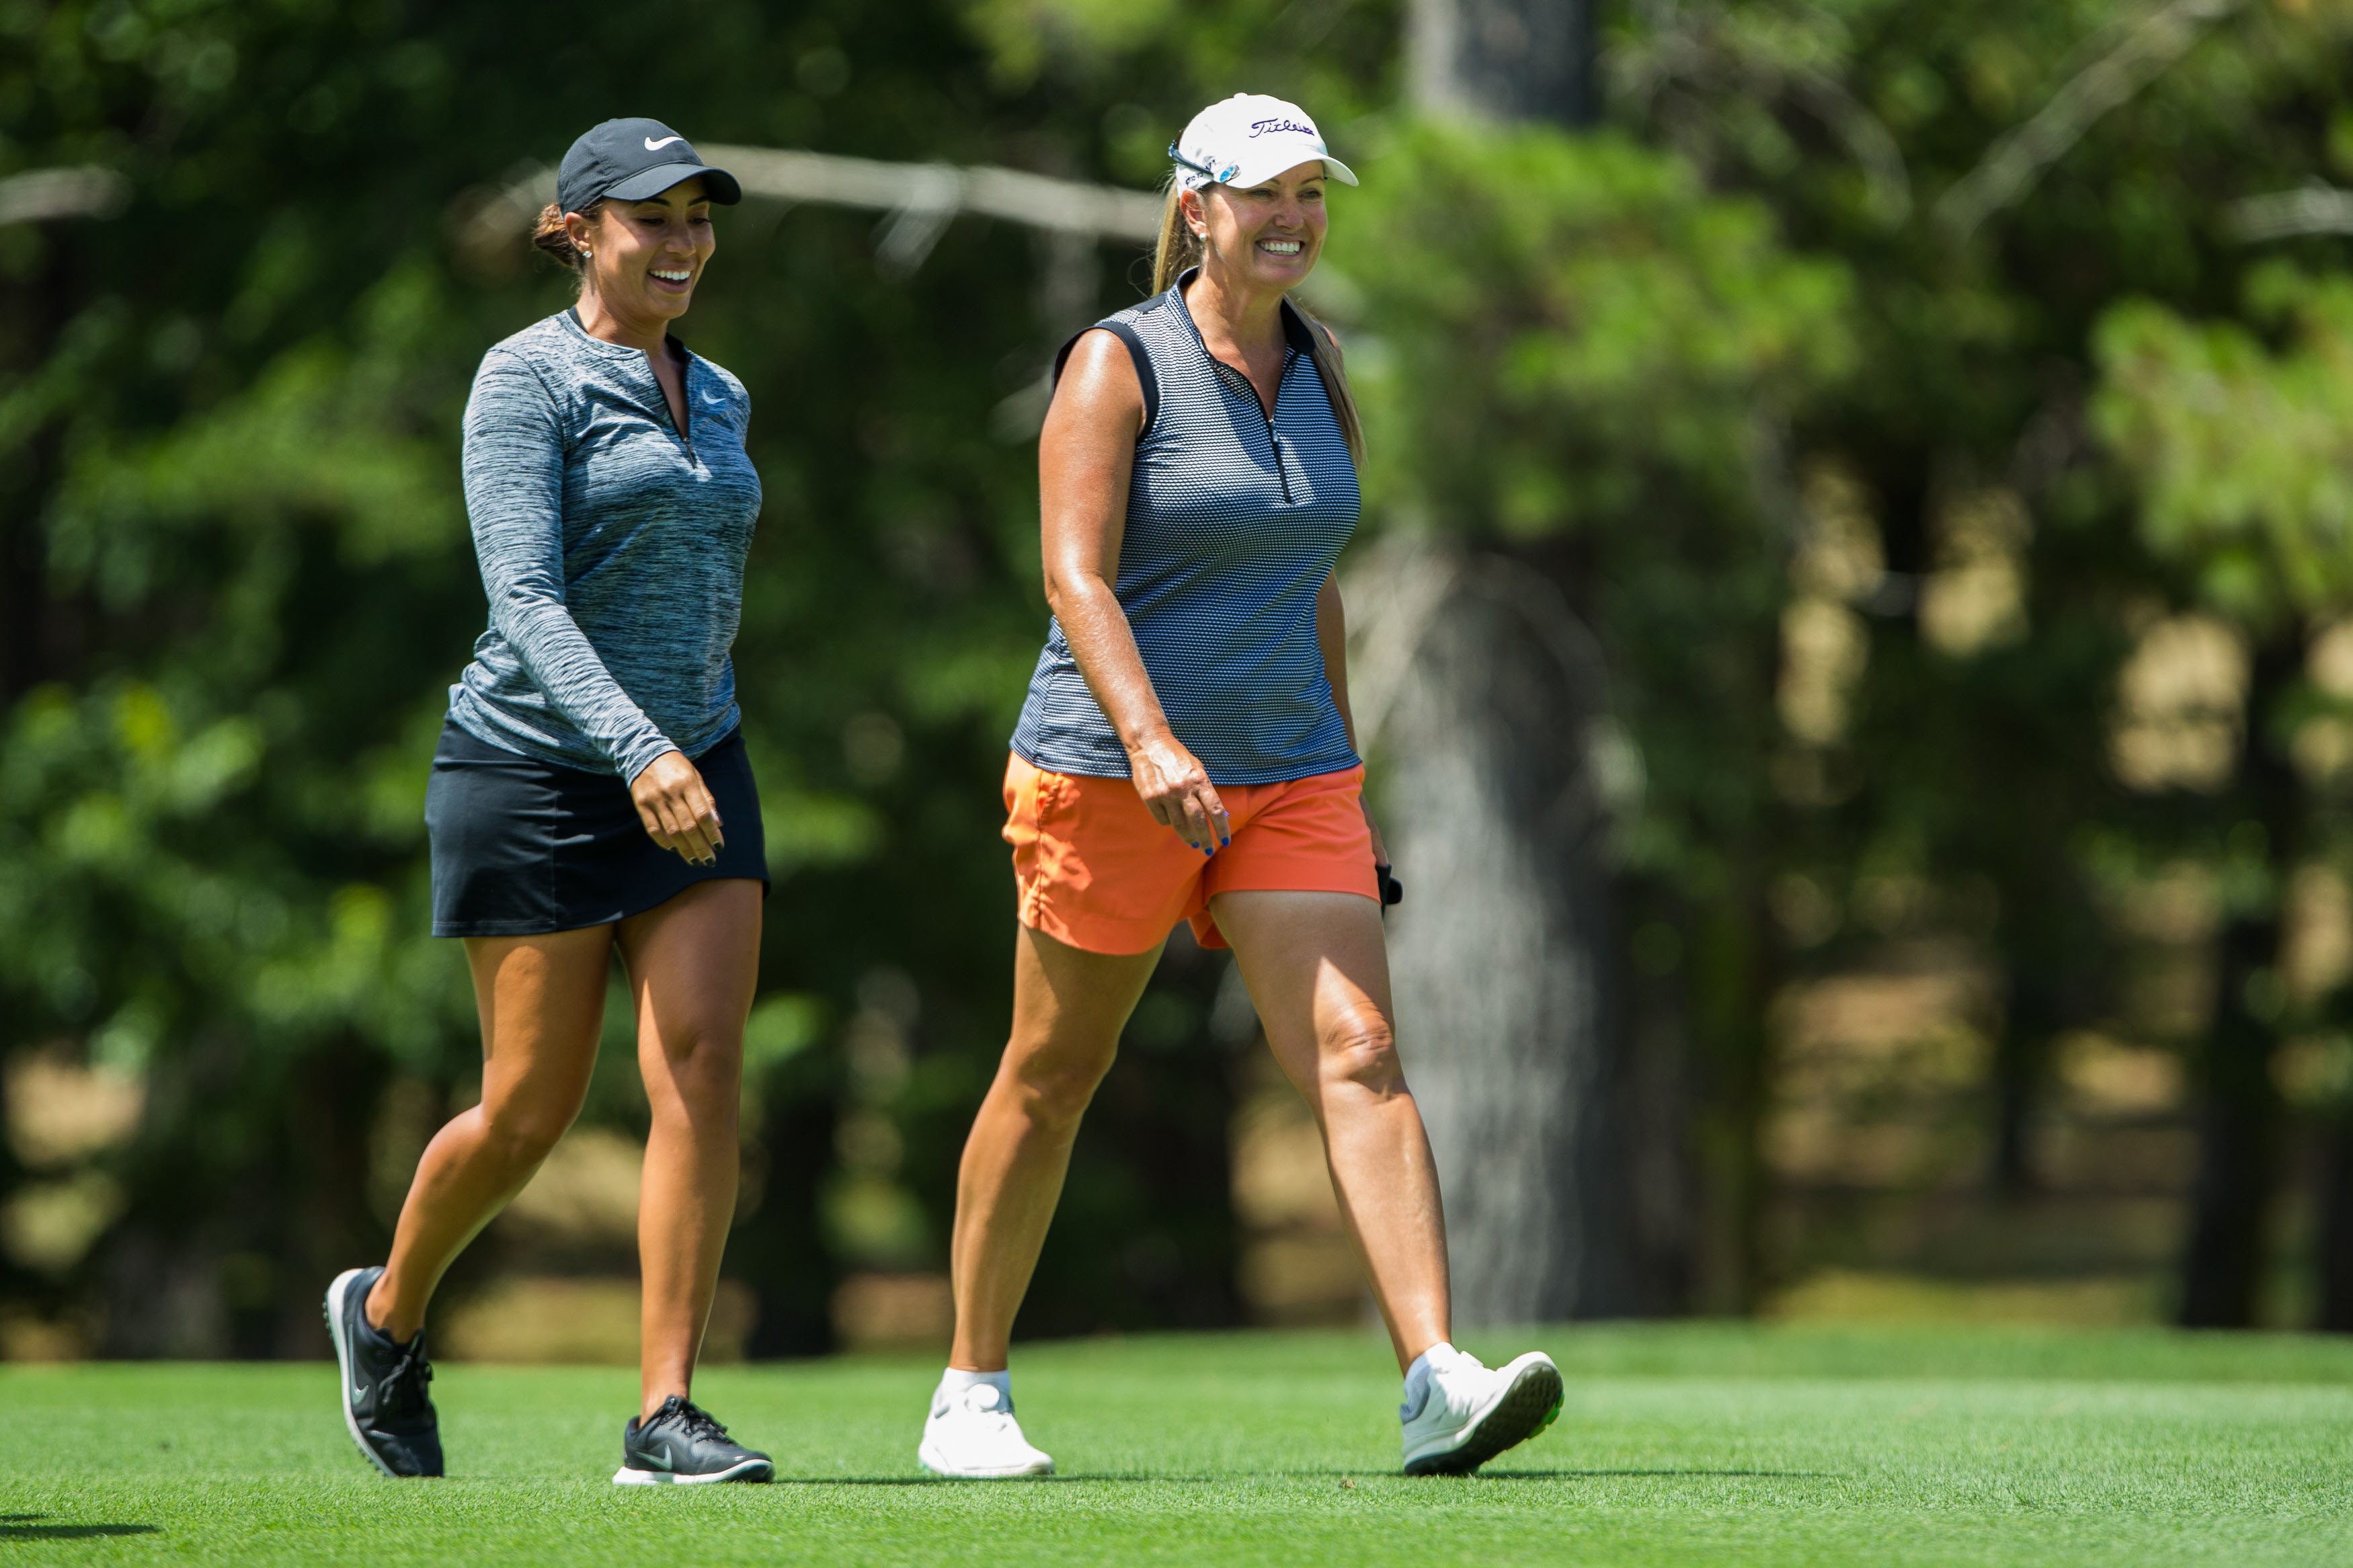 Cheyenne Woods and Adele Douglas during the Wednesday practice round